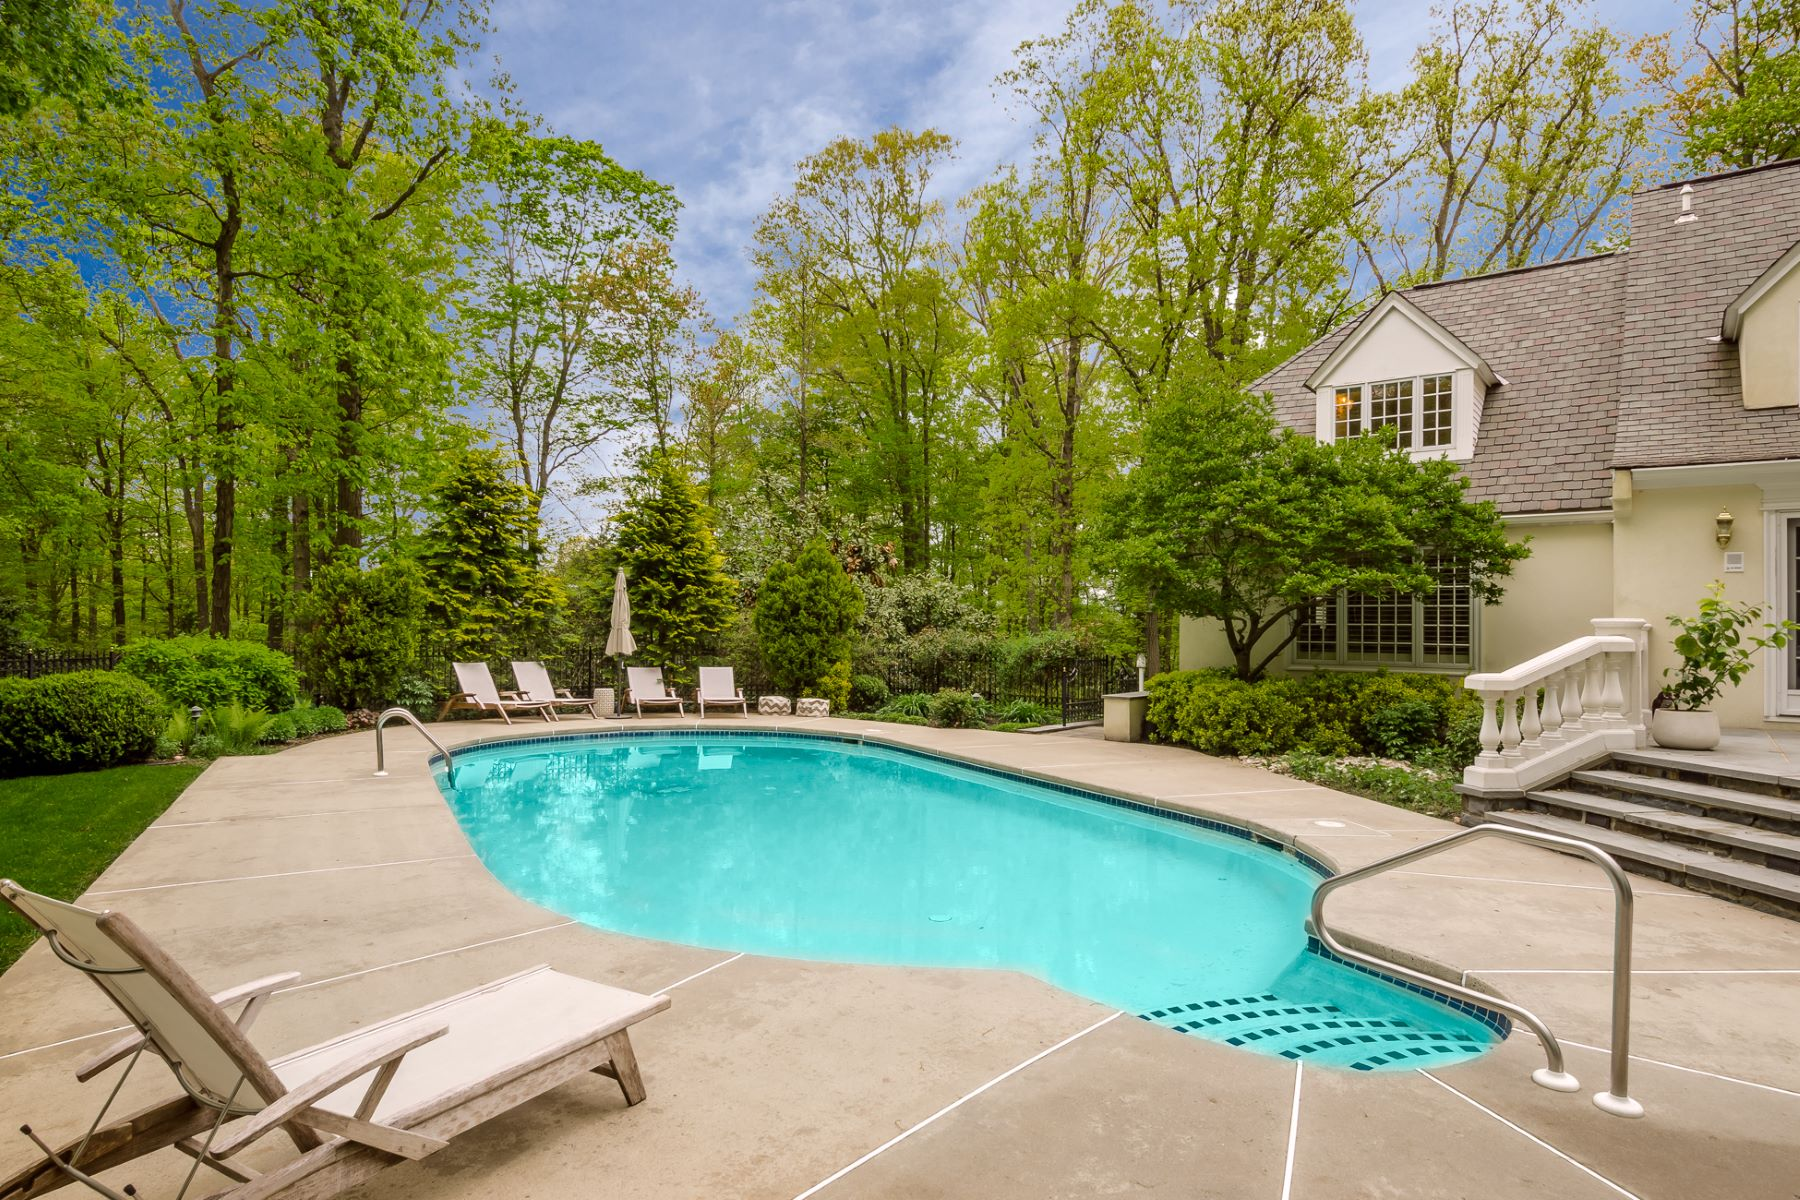 Additional photo for property listing at William Thompson-Designed Home Upends Expectations 141 Rolling Hill Road, Skillman, New Jersey 08558 United States